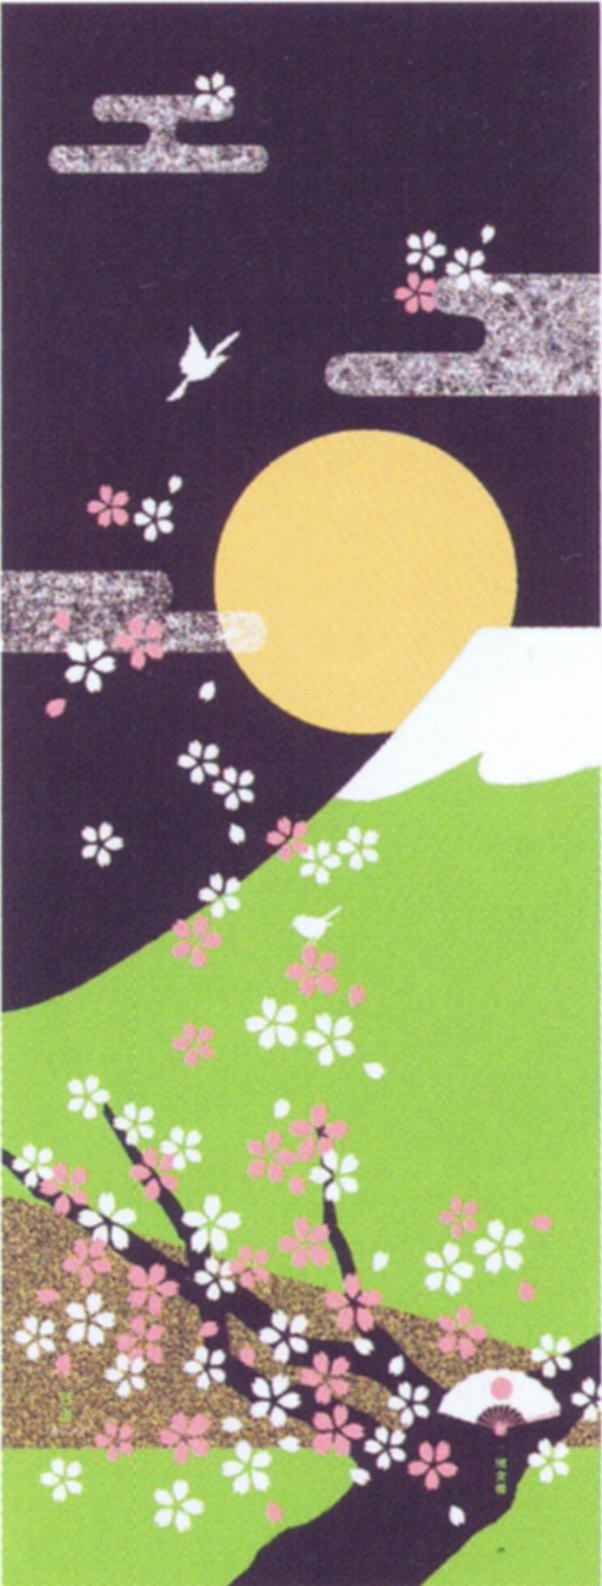 Japanese washcloth, Tenugui 絵てぬぐい 春 春JAPAN.jpg